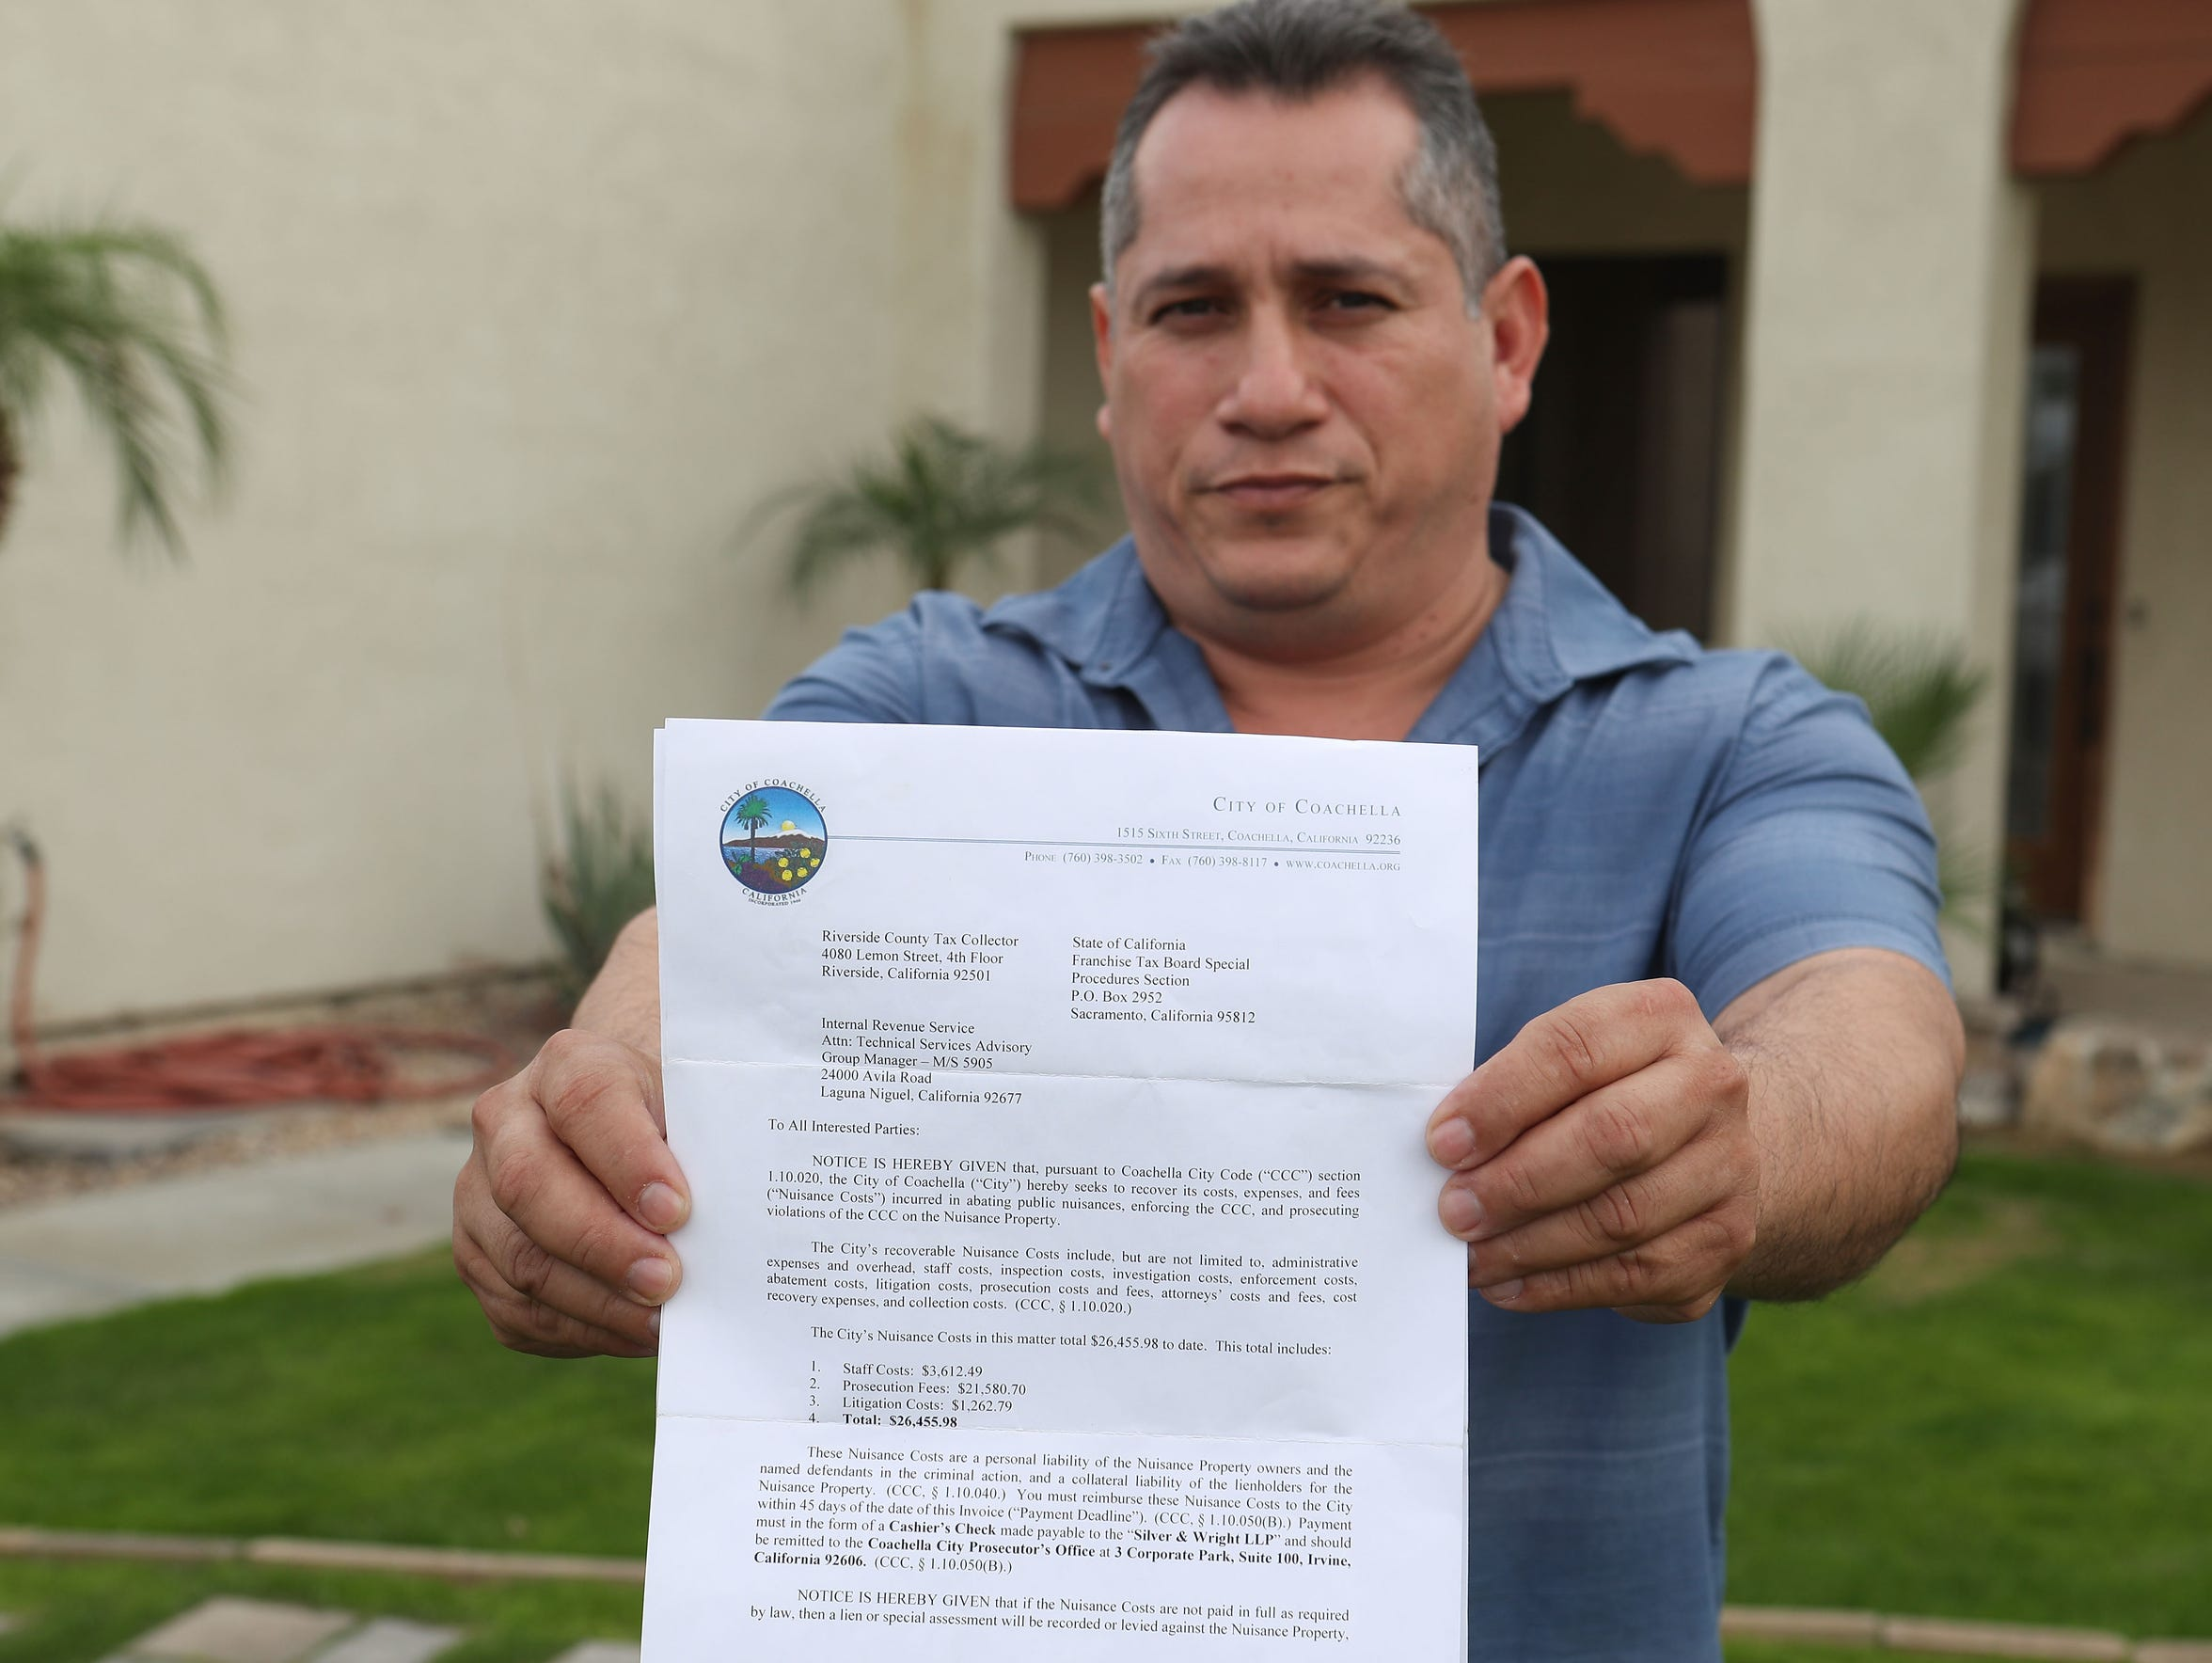 Cesar Garcia, 41, of Coachella, built an addition on